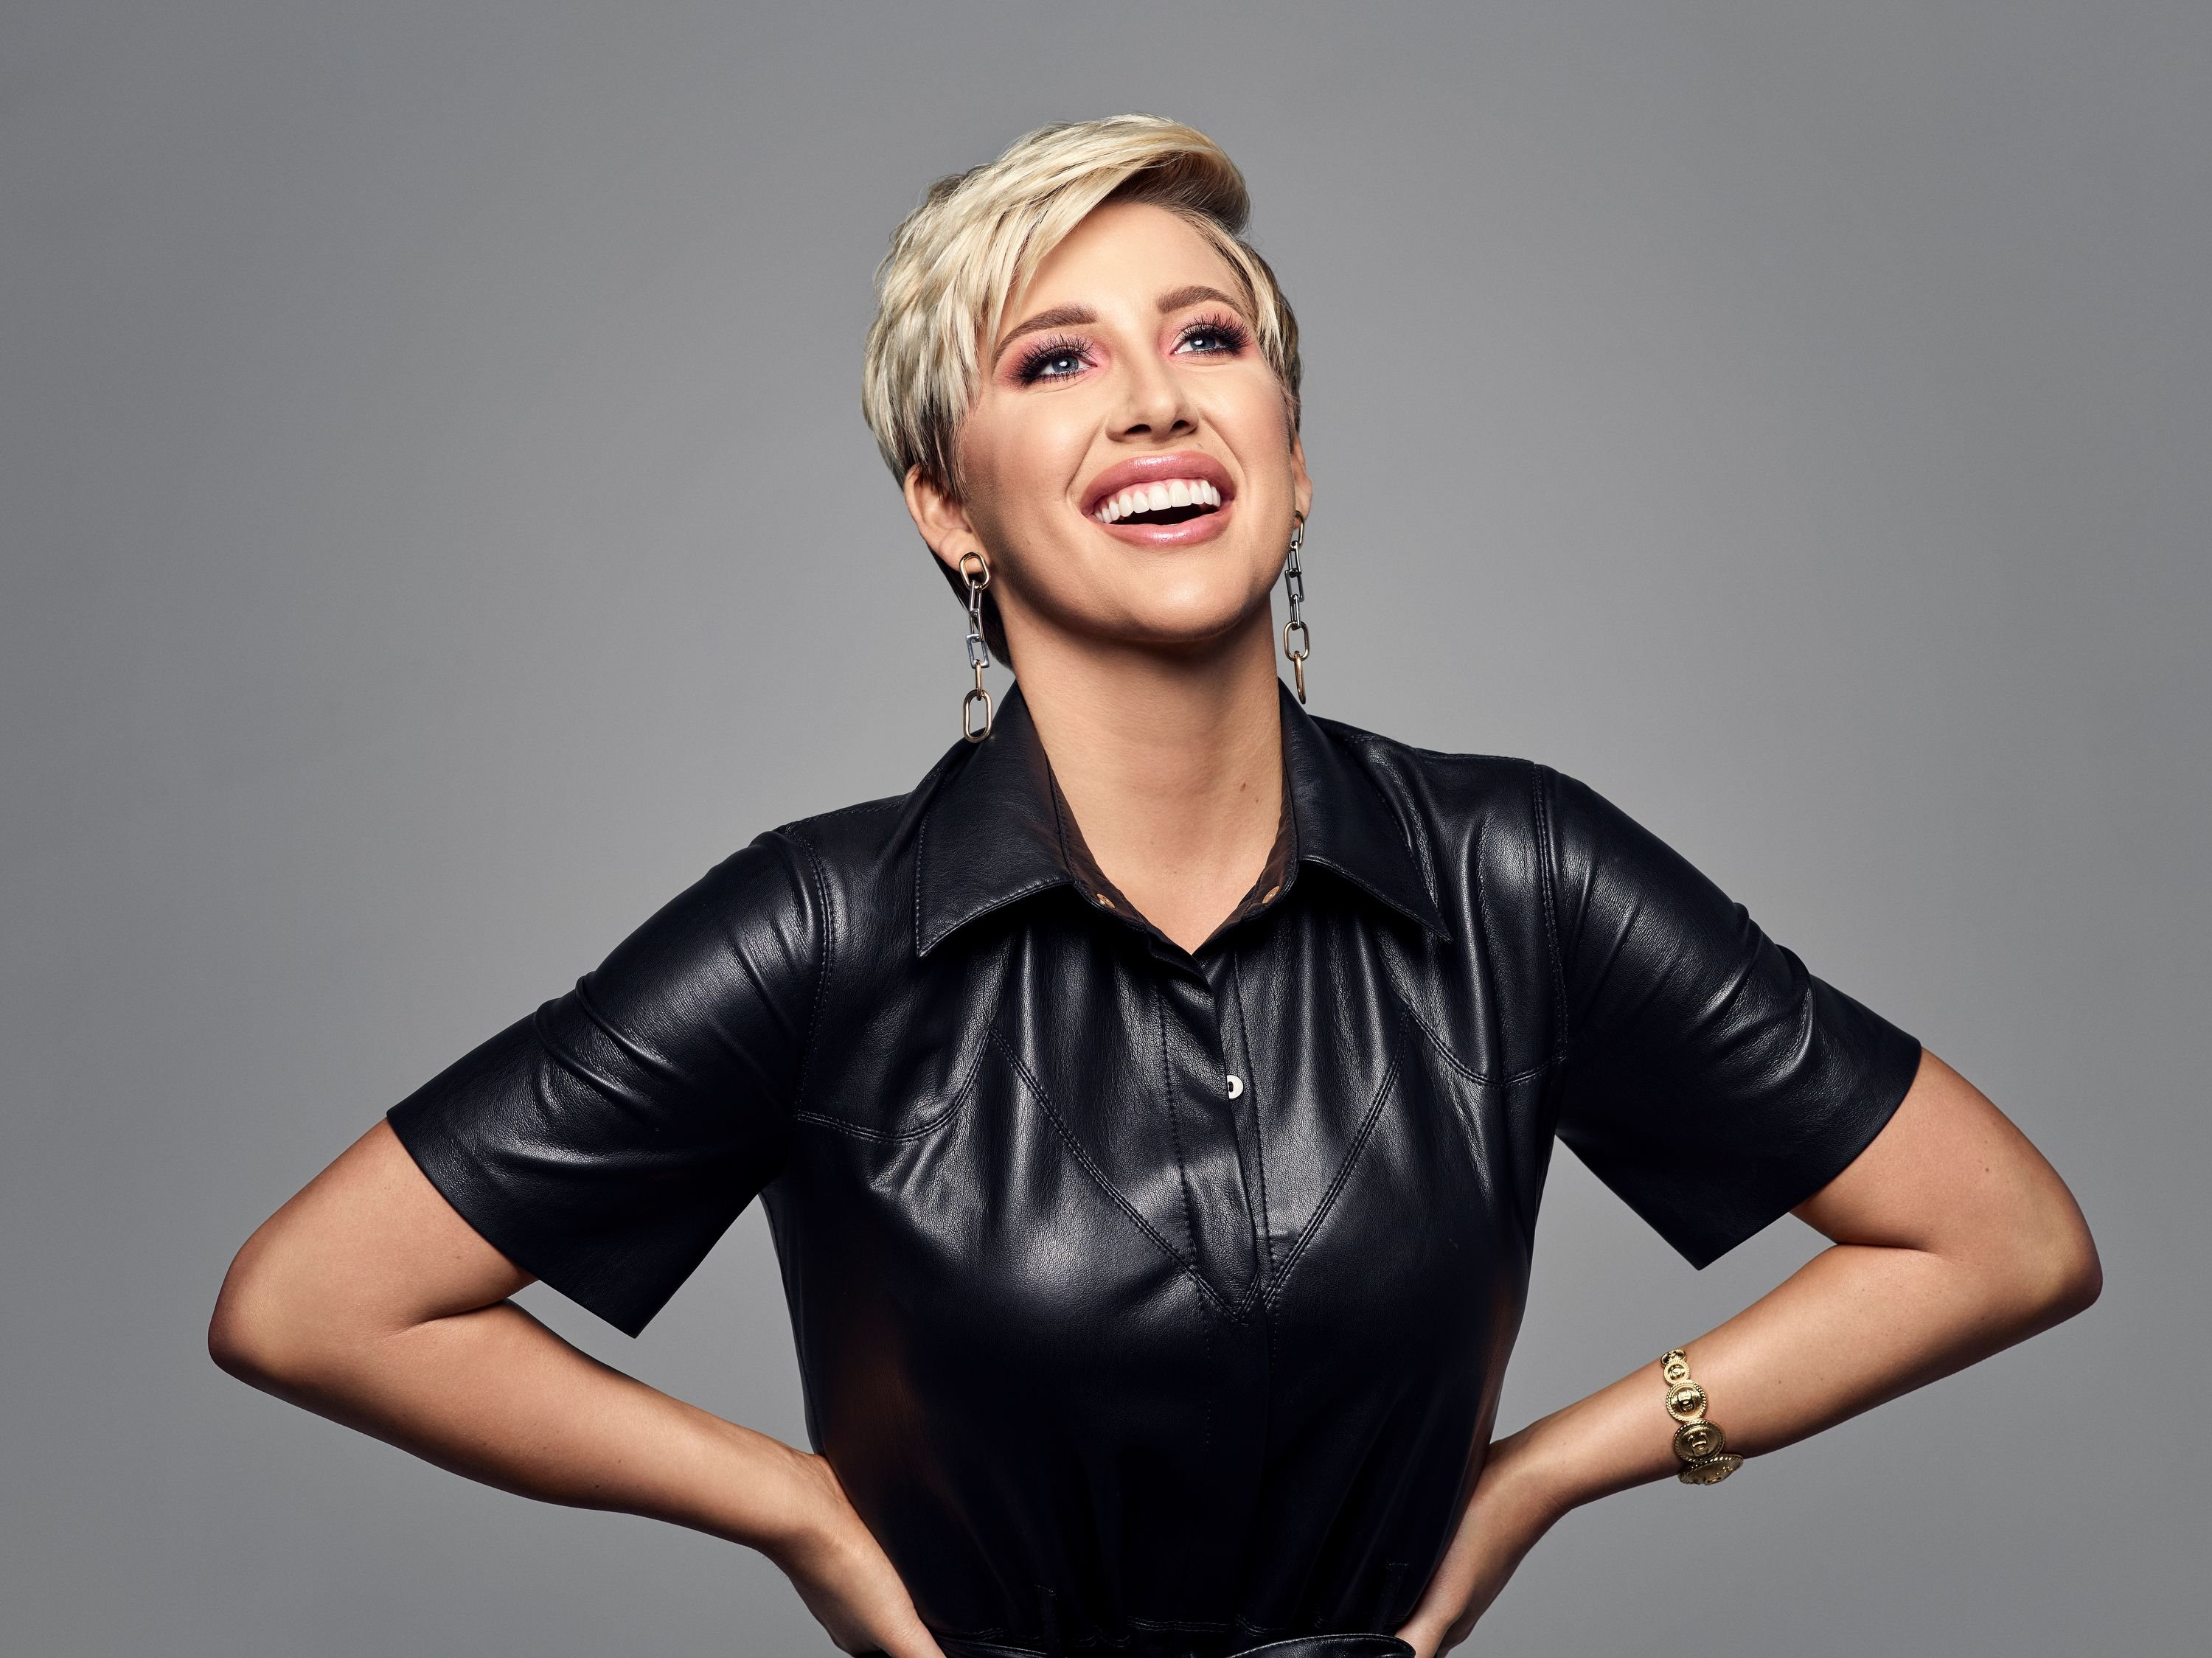 """Savannah Chrisley on Season 8 of """"Chrisley Knows Best"""" on March 09, 2020.   Photo: Getty Images"""